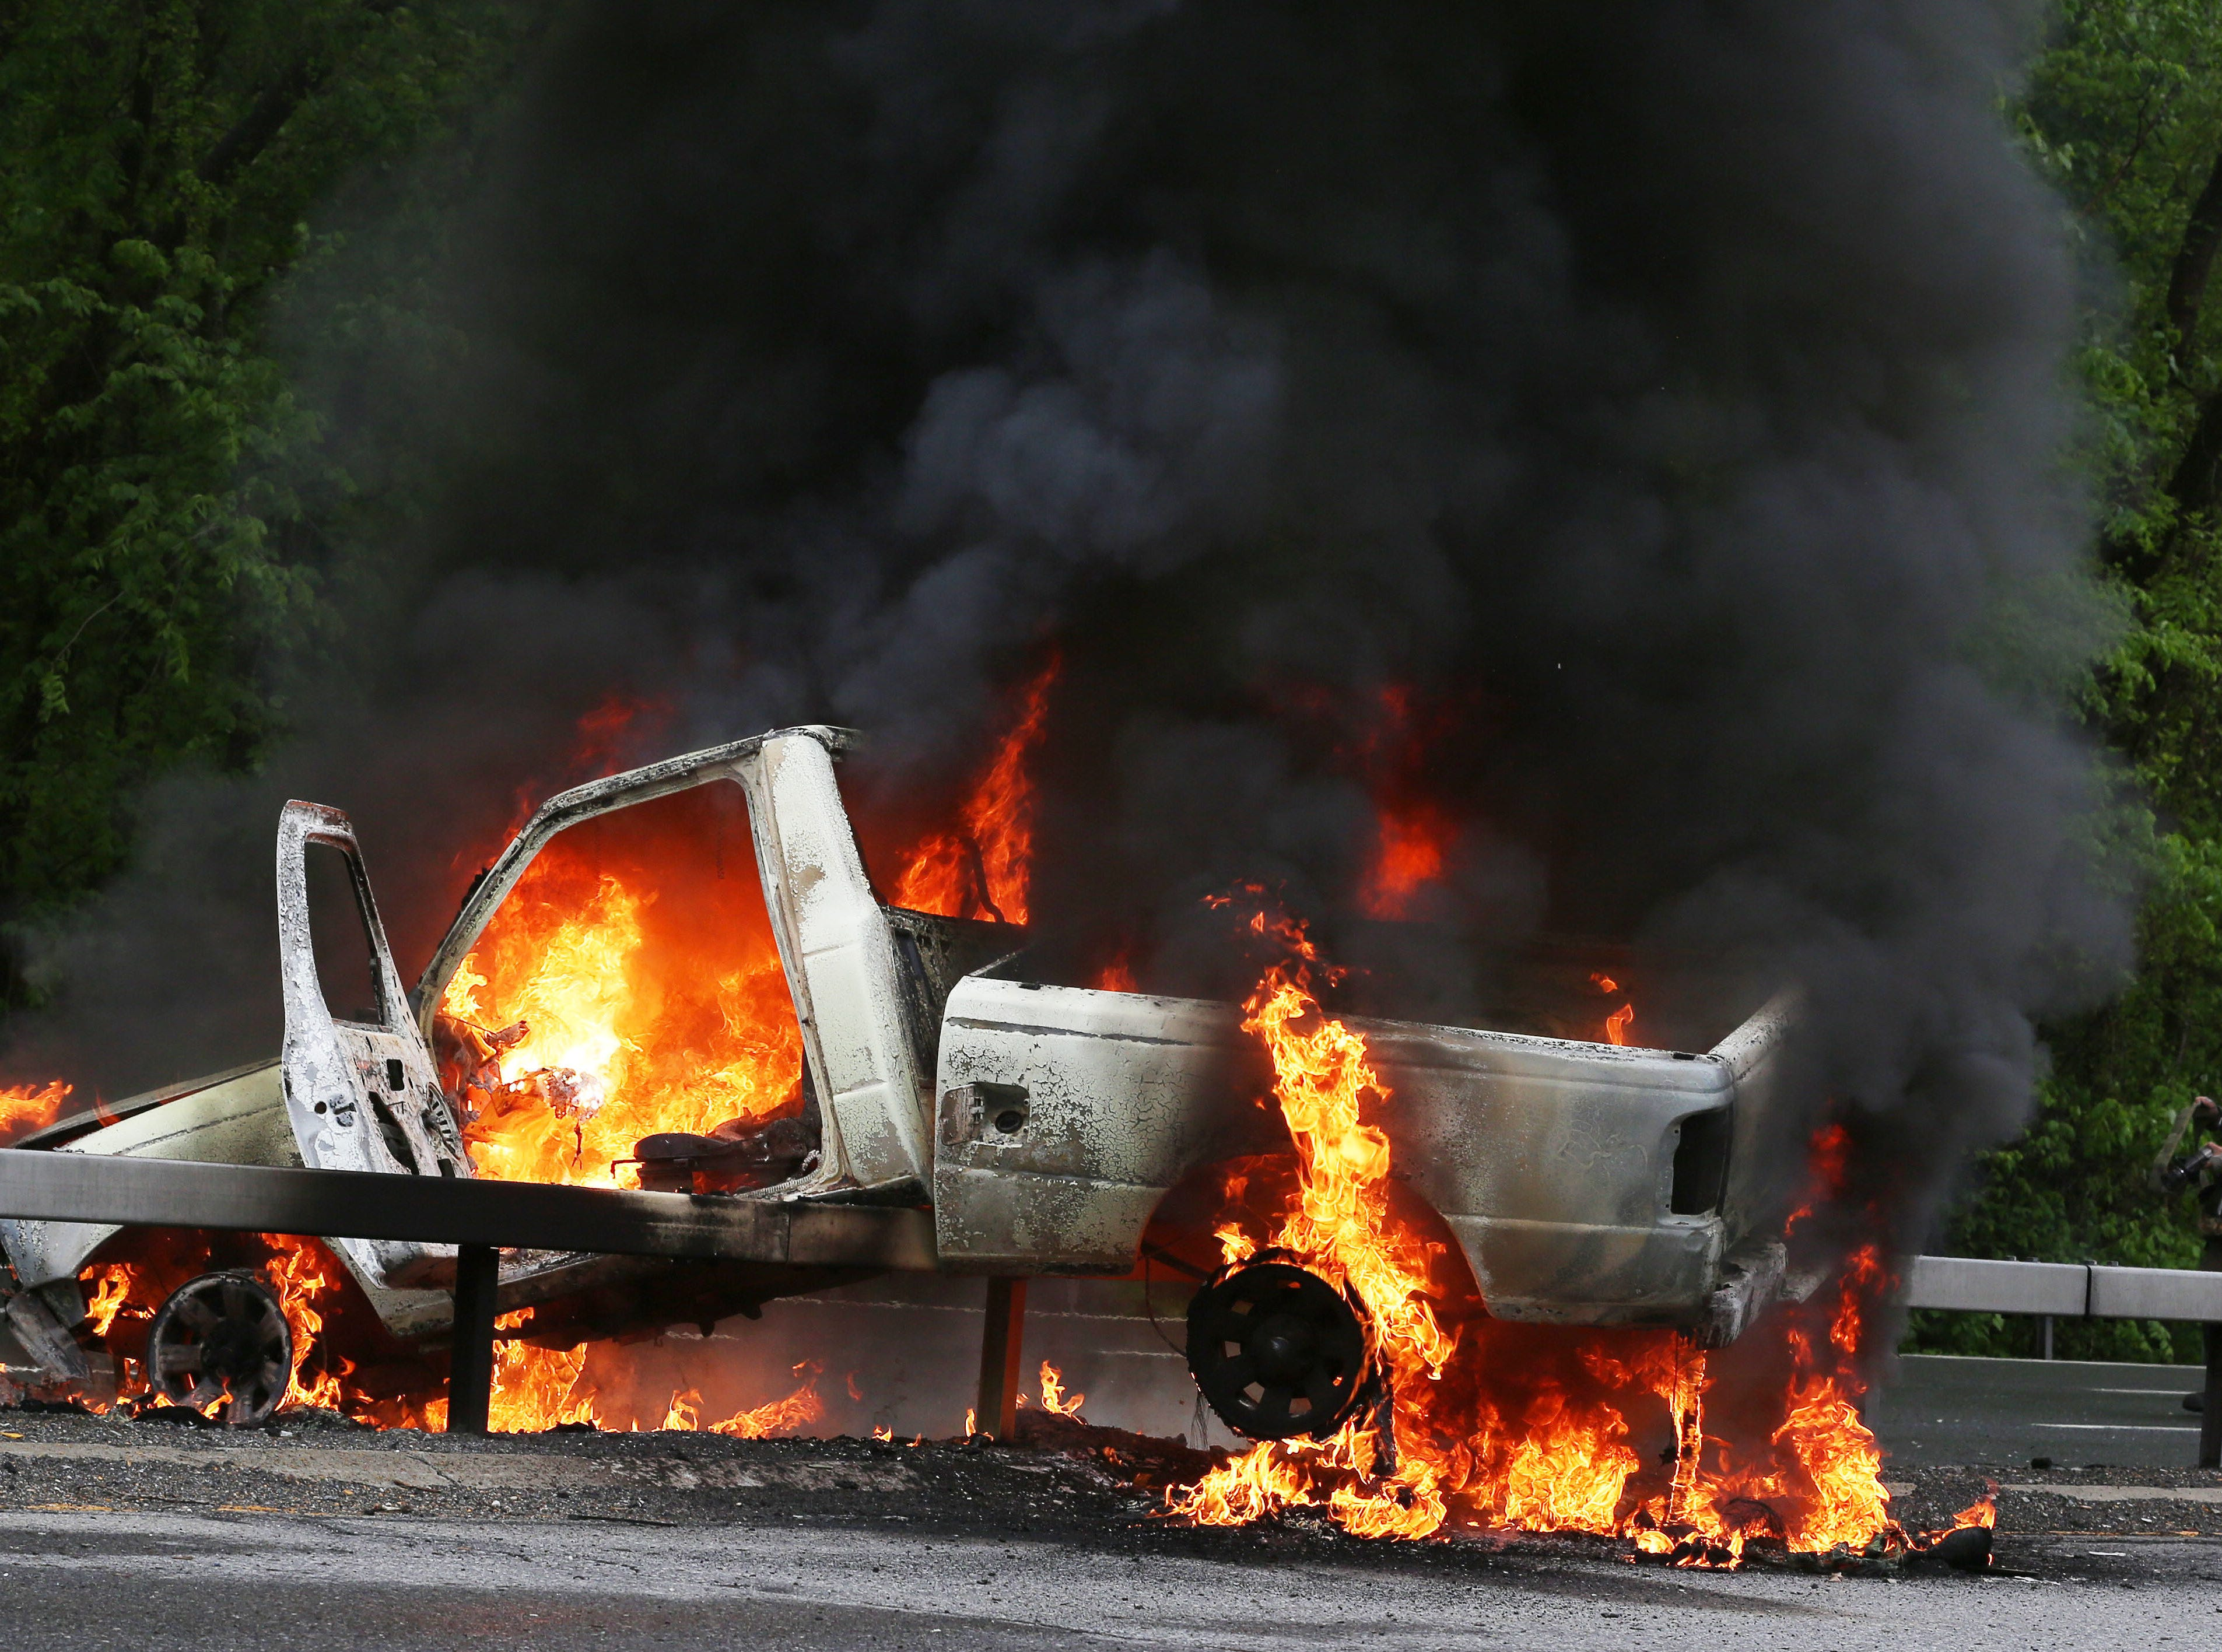 Katonah firefighters prepare to extinguish a fire in a pickup truck after it crashed into the center guardrail on the Saw Mill Parkway in Katonah Thursday afternoon May 17, 2018. The driver was not seriously injured.